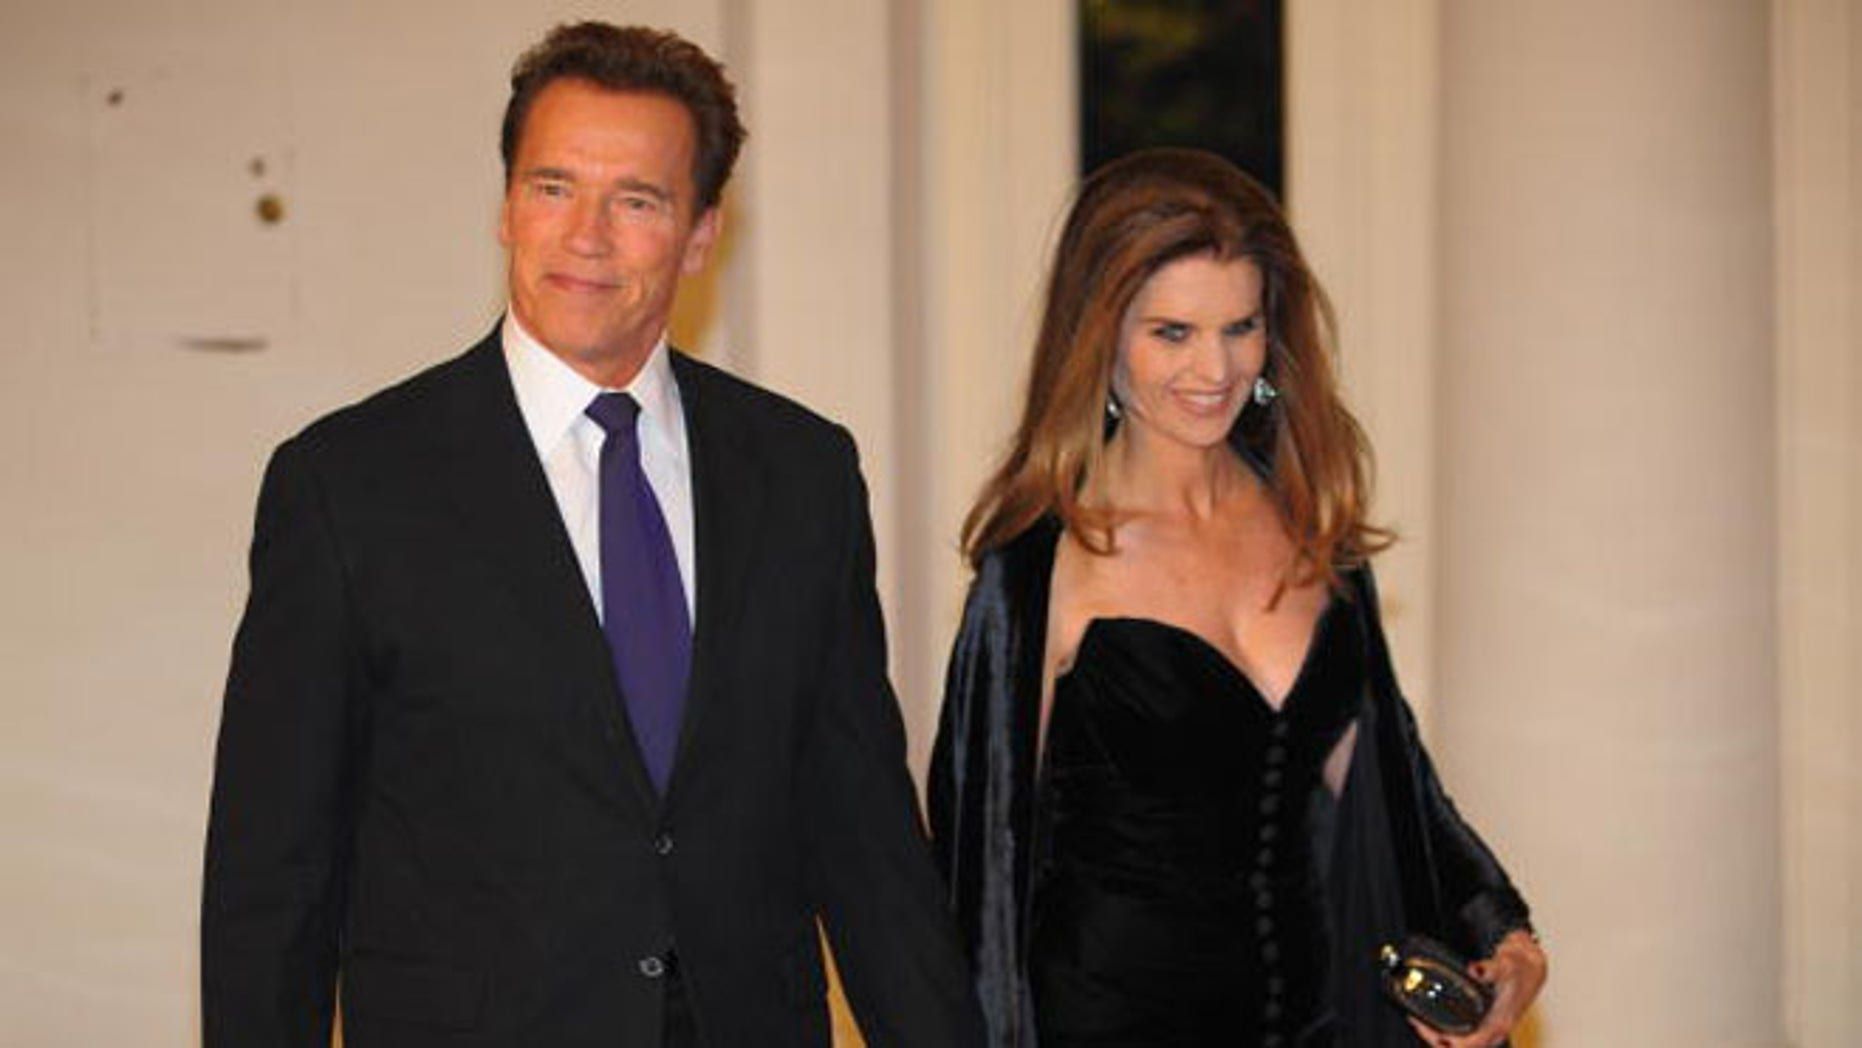 In new tell-all Schwarzenegger describes how his wife Maria Shriver confronted him about his Latin love child.